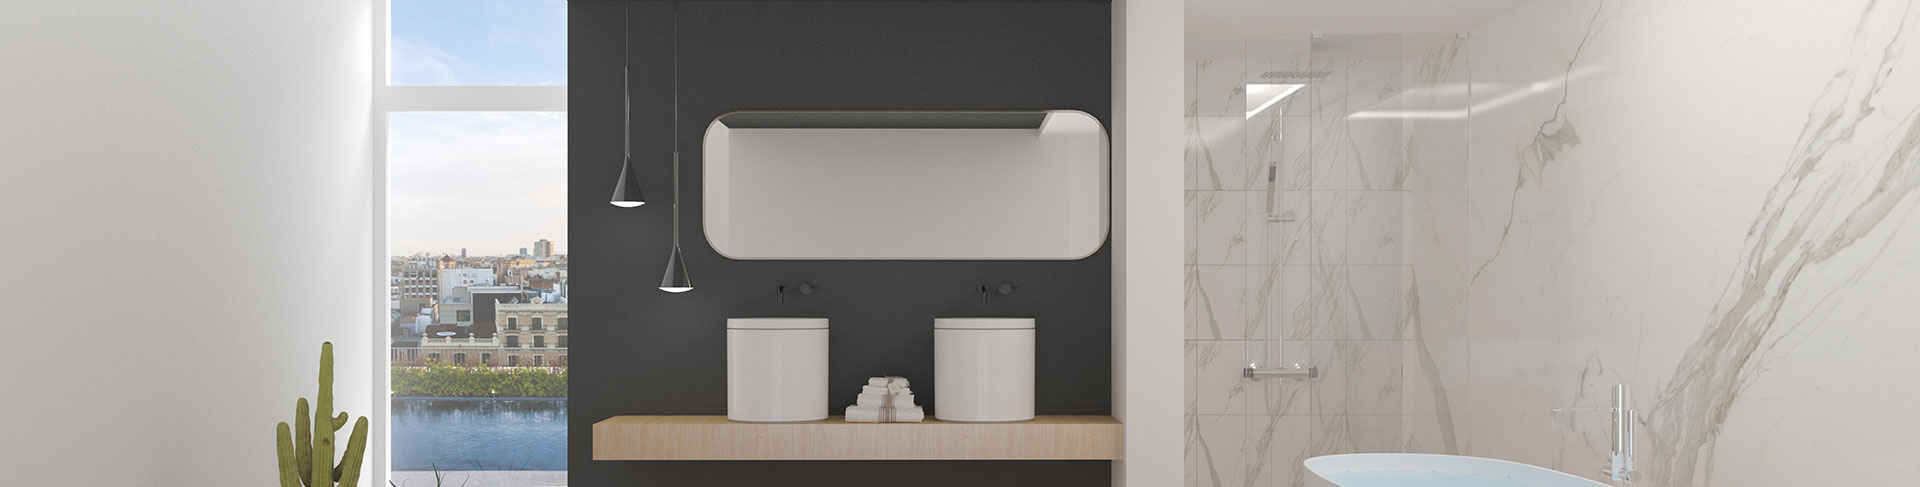 700mm Bathroom Mirror